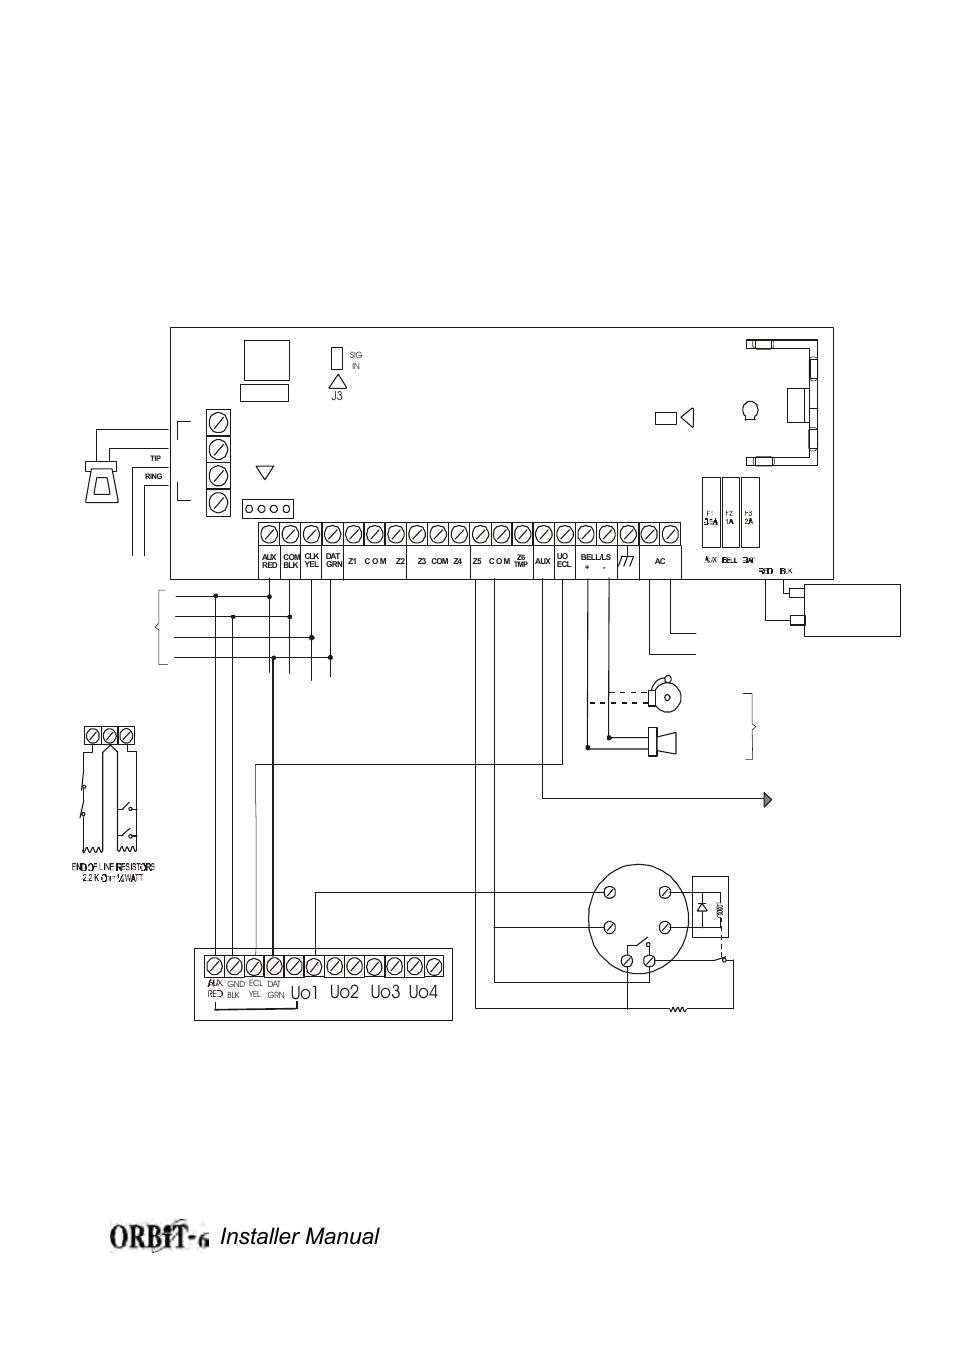 Orbit-6 wiring diagram figure 1b, Installer manual 33, Uo1 uo2 uo3 uo4 |  Orbit Manufacturing Rokonet ORBIT-6 RP-206 User Manual | Page 33 / 37